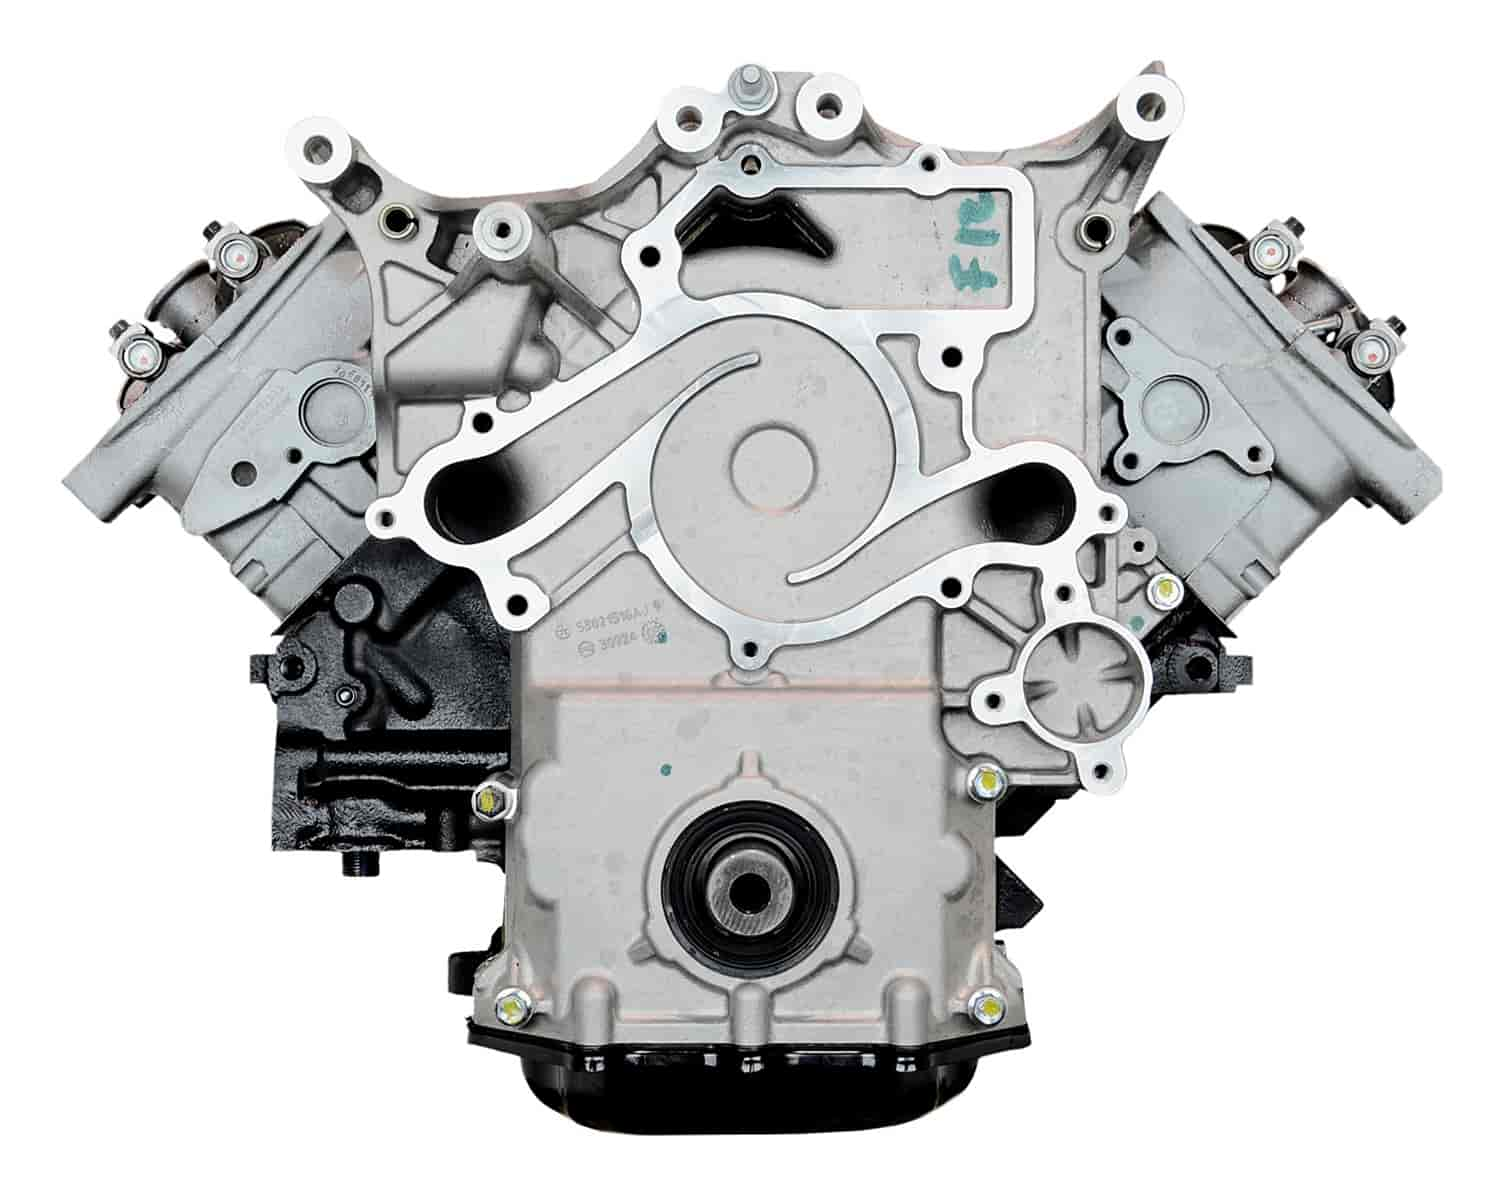 ATK Engines Remanufactured Crate Engine for 2003 Dodge Ram Truck with 5 7L  HEMI V8